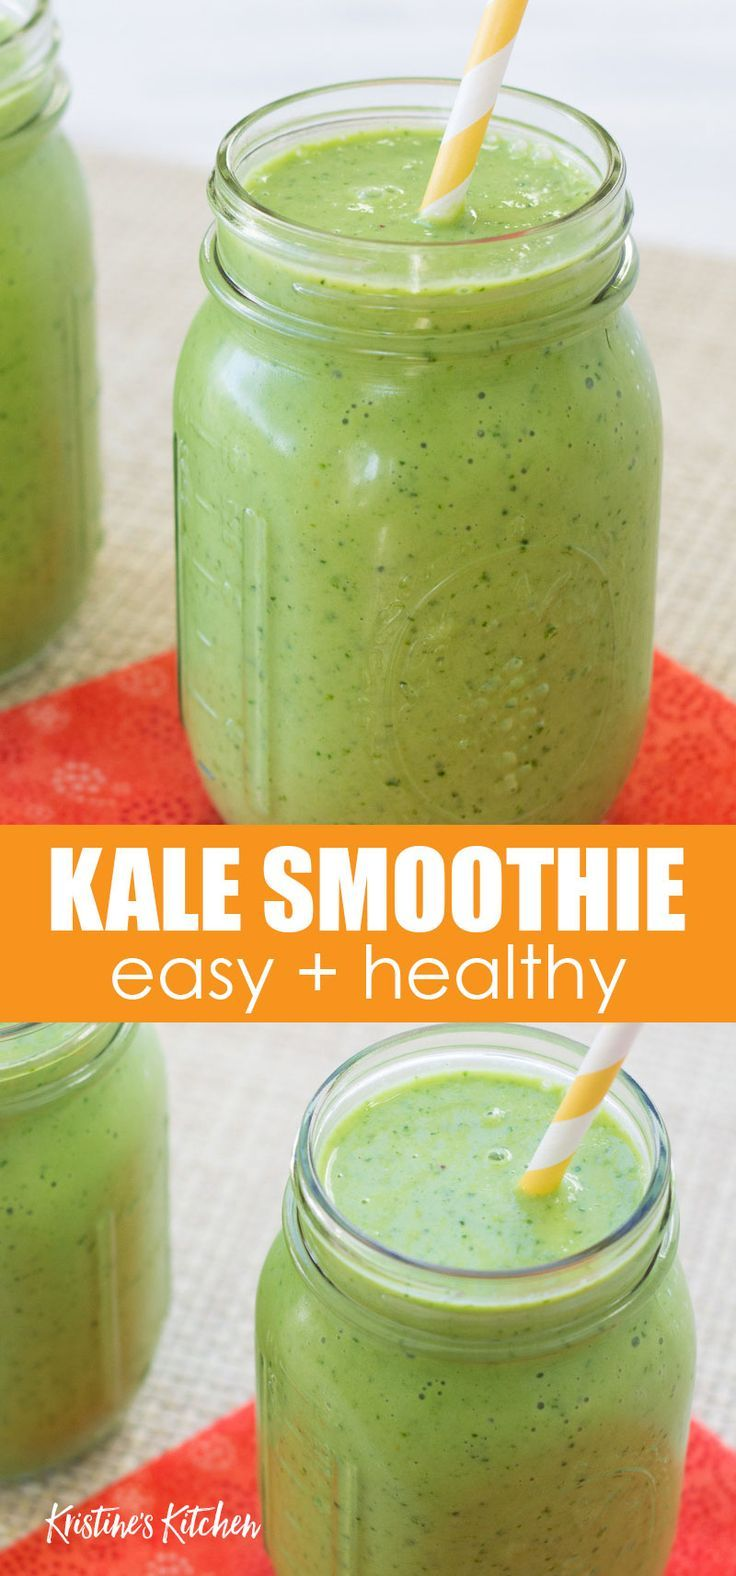 This healthy kale smoothie is full of protein and fiber